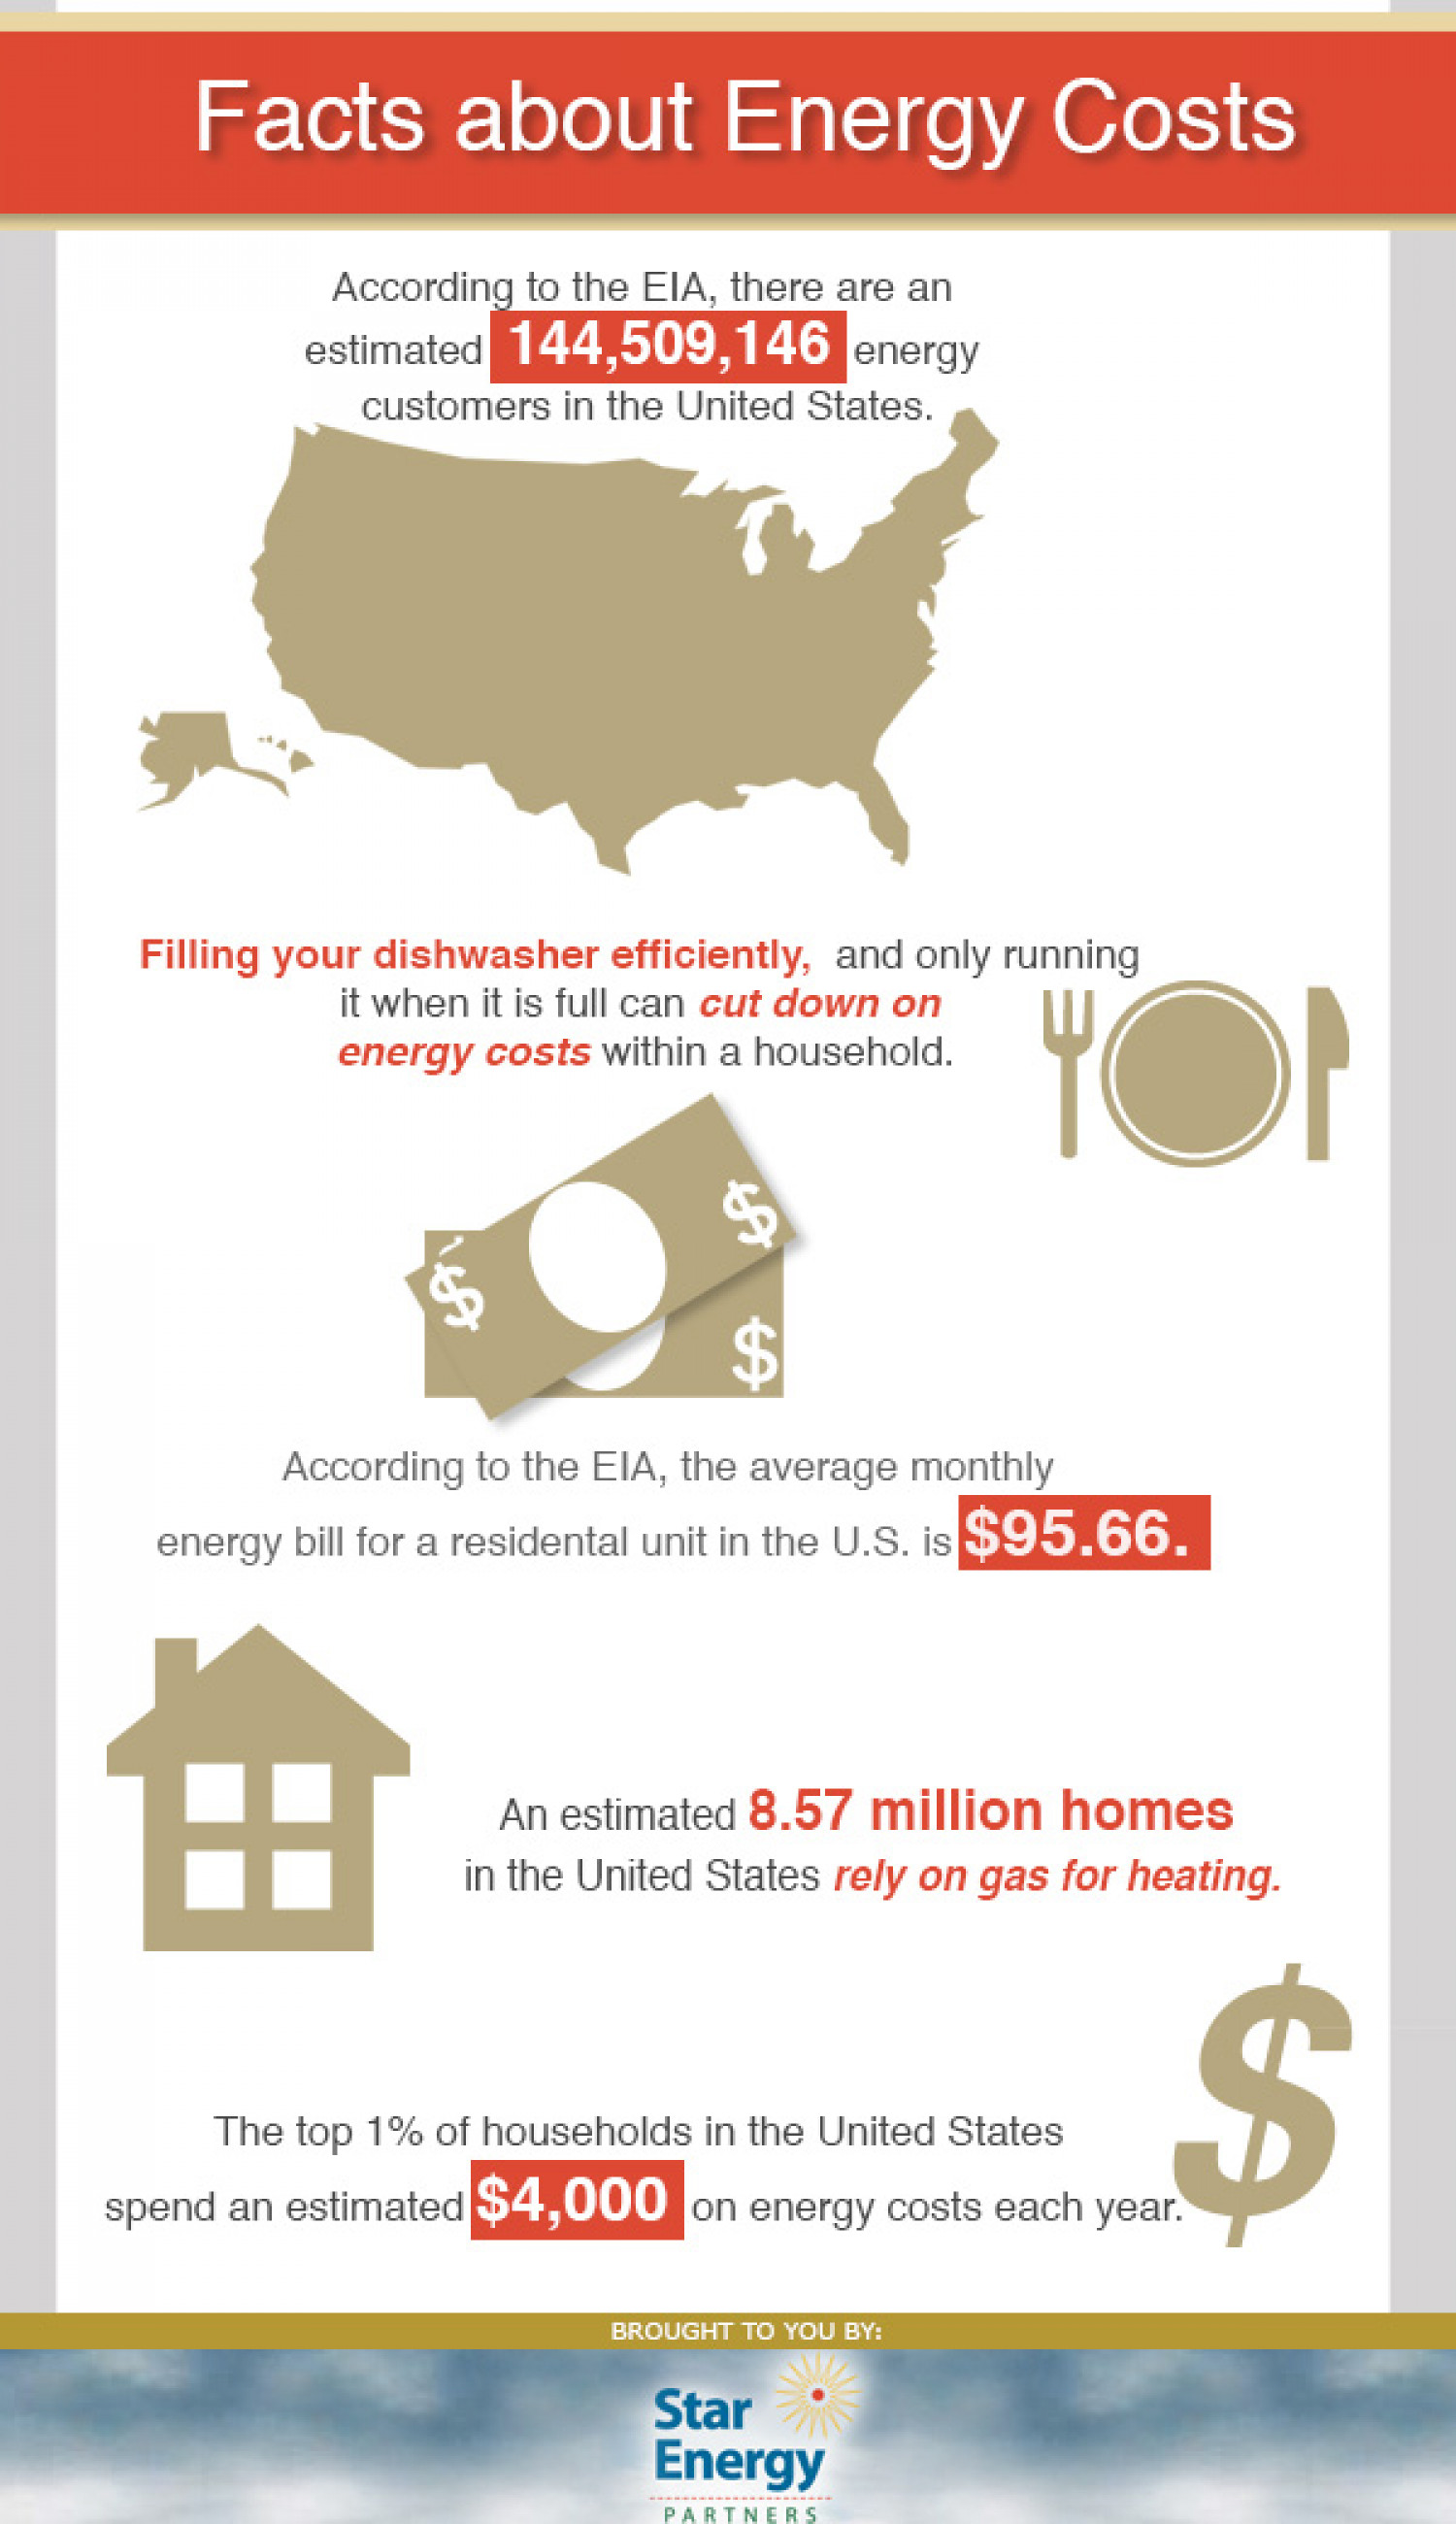 Facts About Energy Costs Infographic